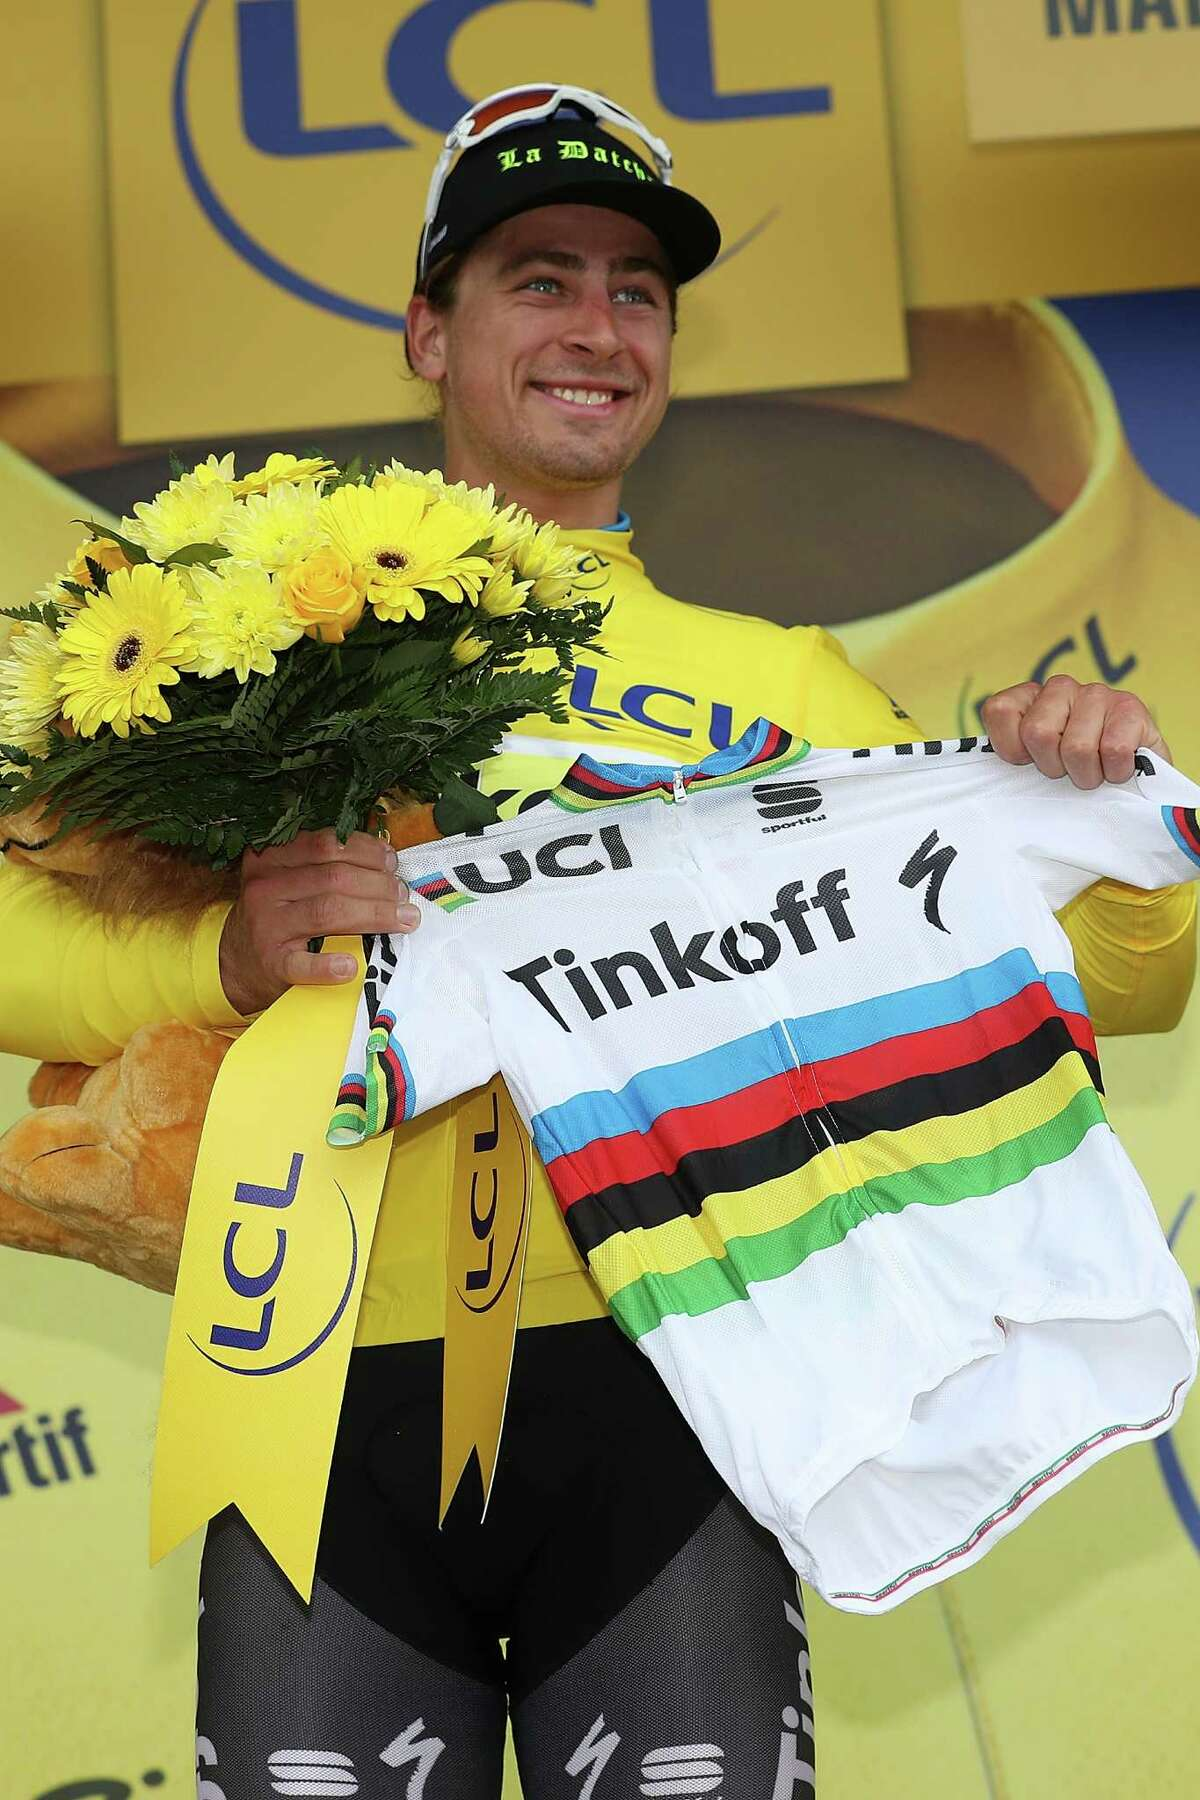 CHERBOURG, FRANCE - JULY 03: Peter Sagan of Slovakia riding for Tinkoff celebrates after winning stage two and taking the yellow leader's jersey during stage two of the 2016 Le Tour de France a 183km stage from Saint-L to Cherbourg-en-Cotentin at on July 3, 2016 in Cherbourg, France. (Photo by Chris Graythen/Getty Images) ORG XMIT: 645212543